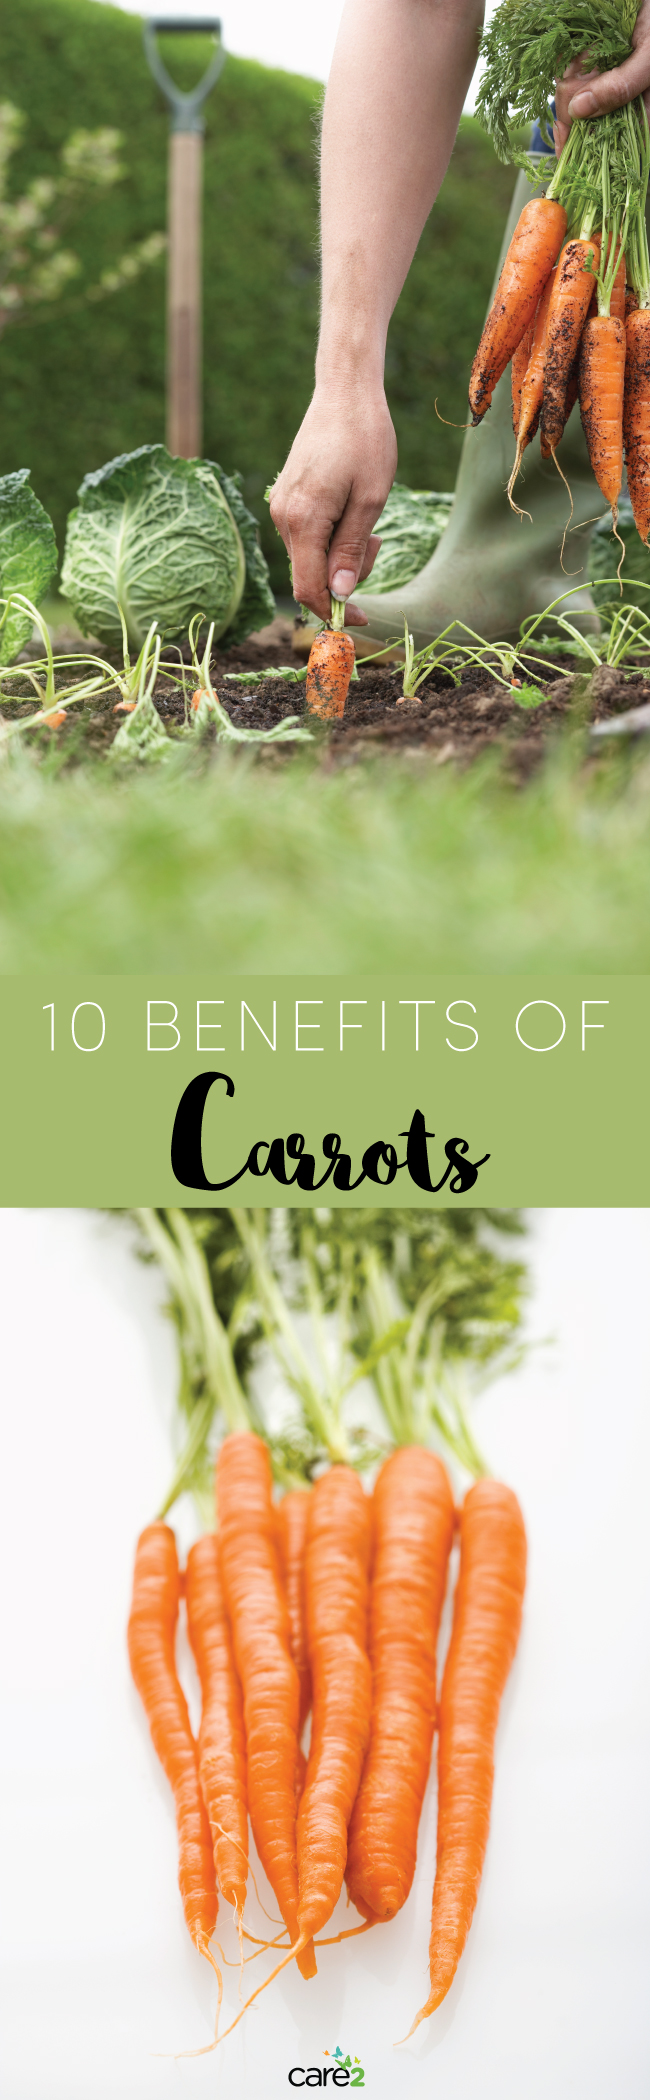 10 Benefits of Carrots: The Crunchy Powerfood